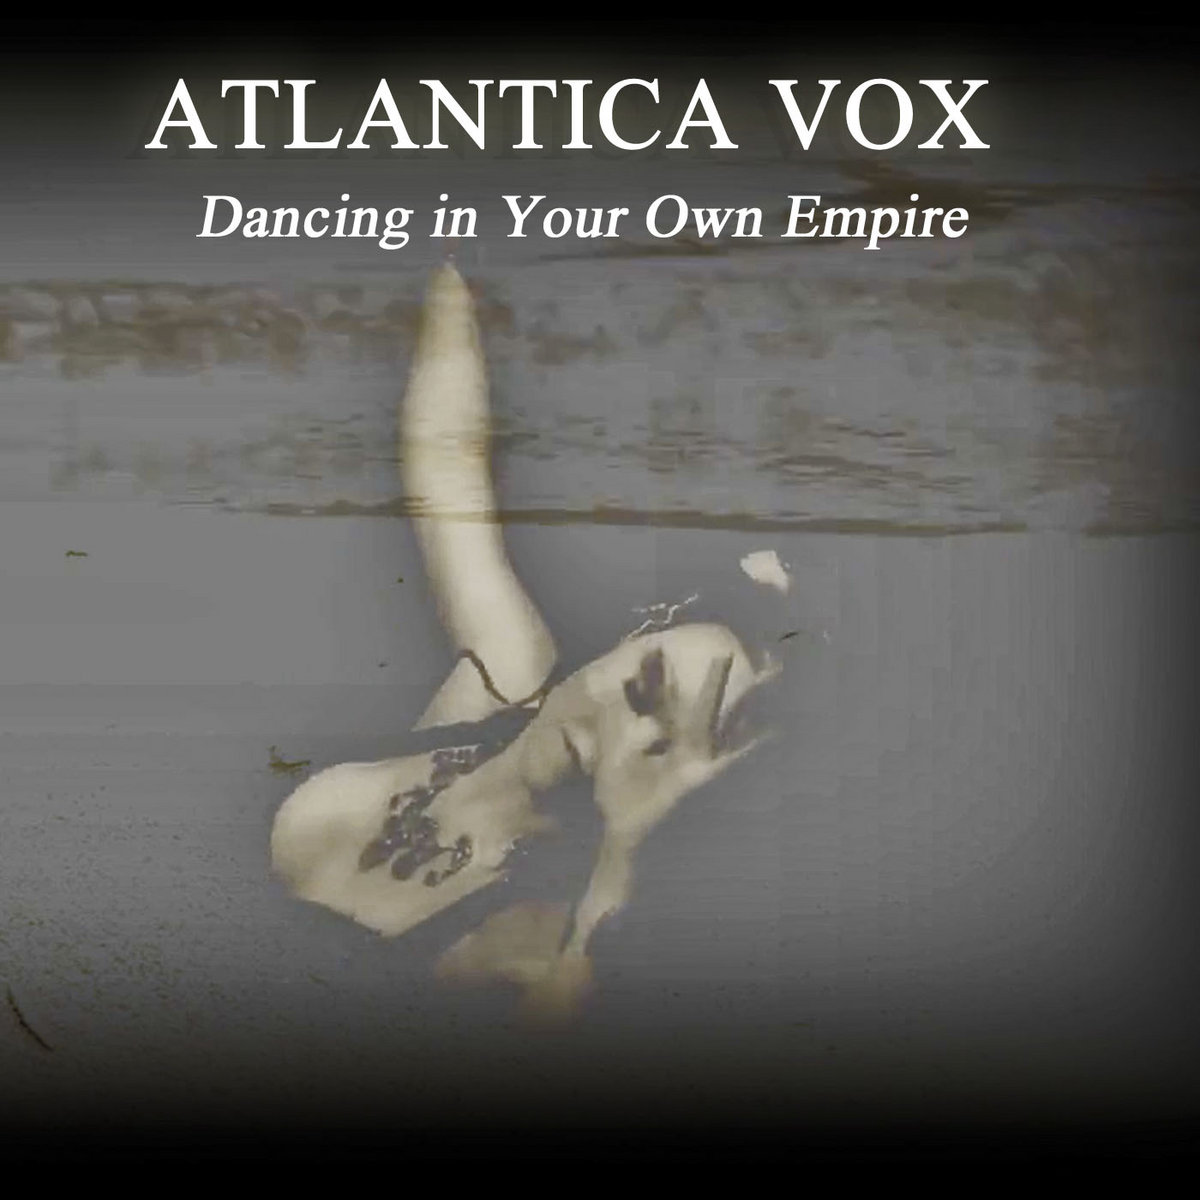 Dancing in Your Own Empire by Atlantica Vox